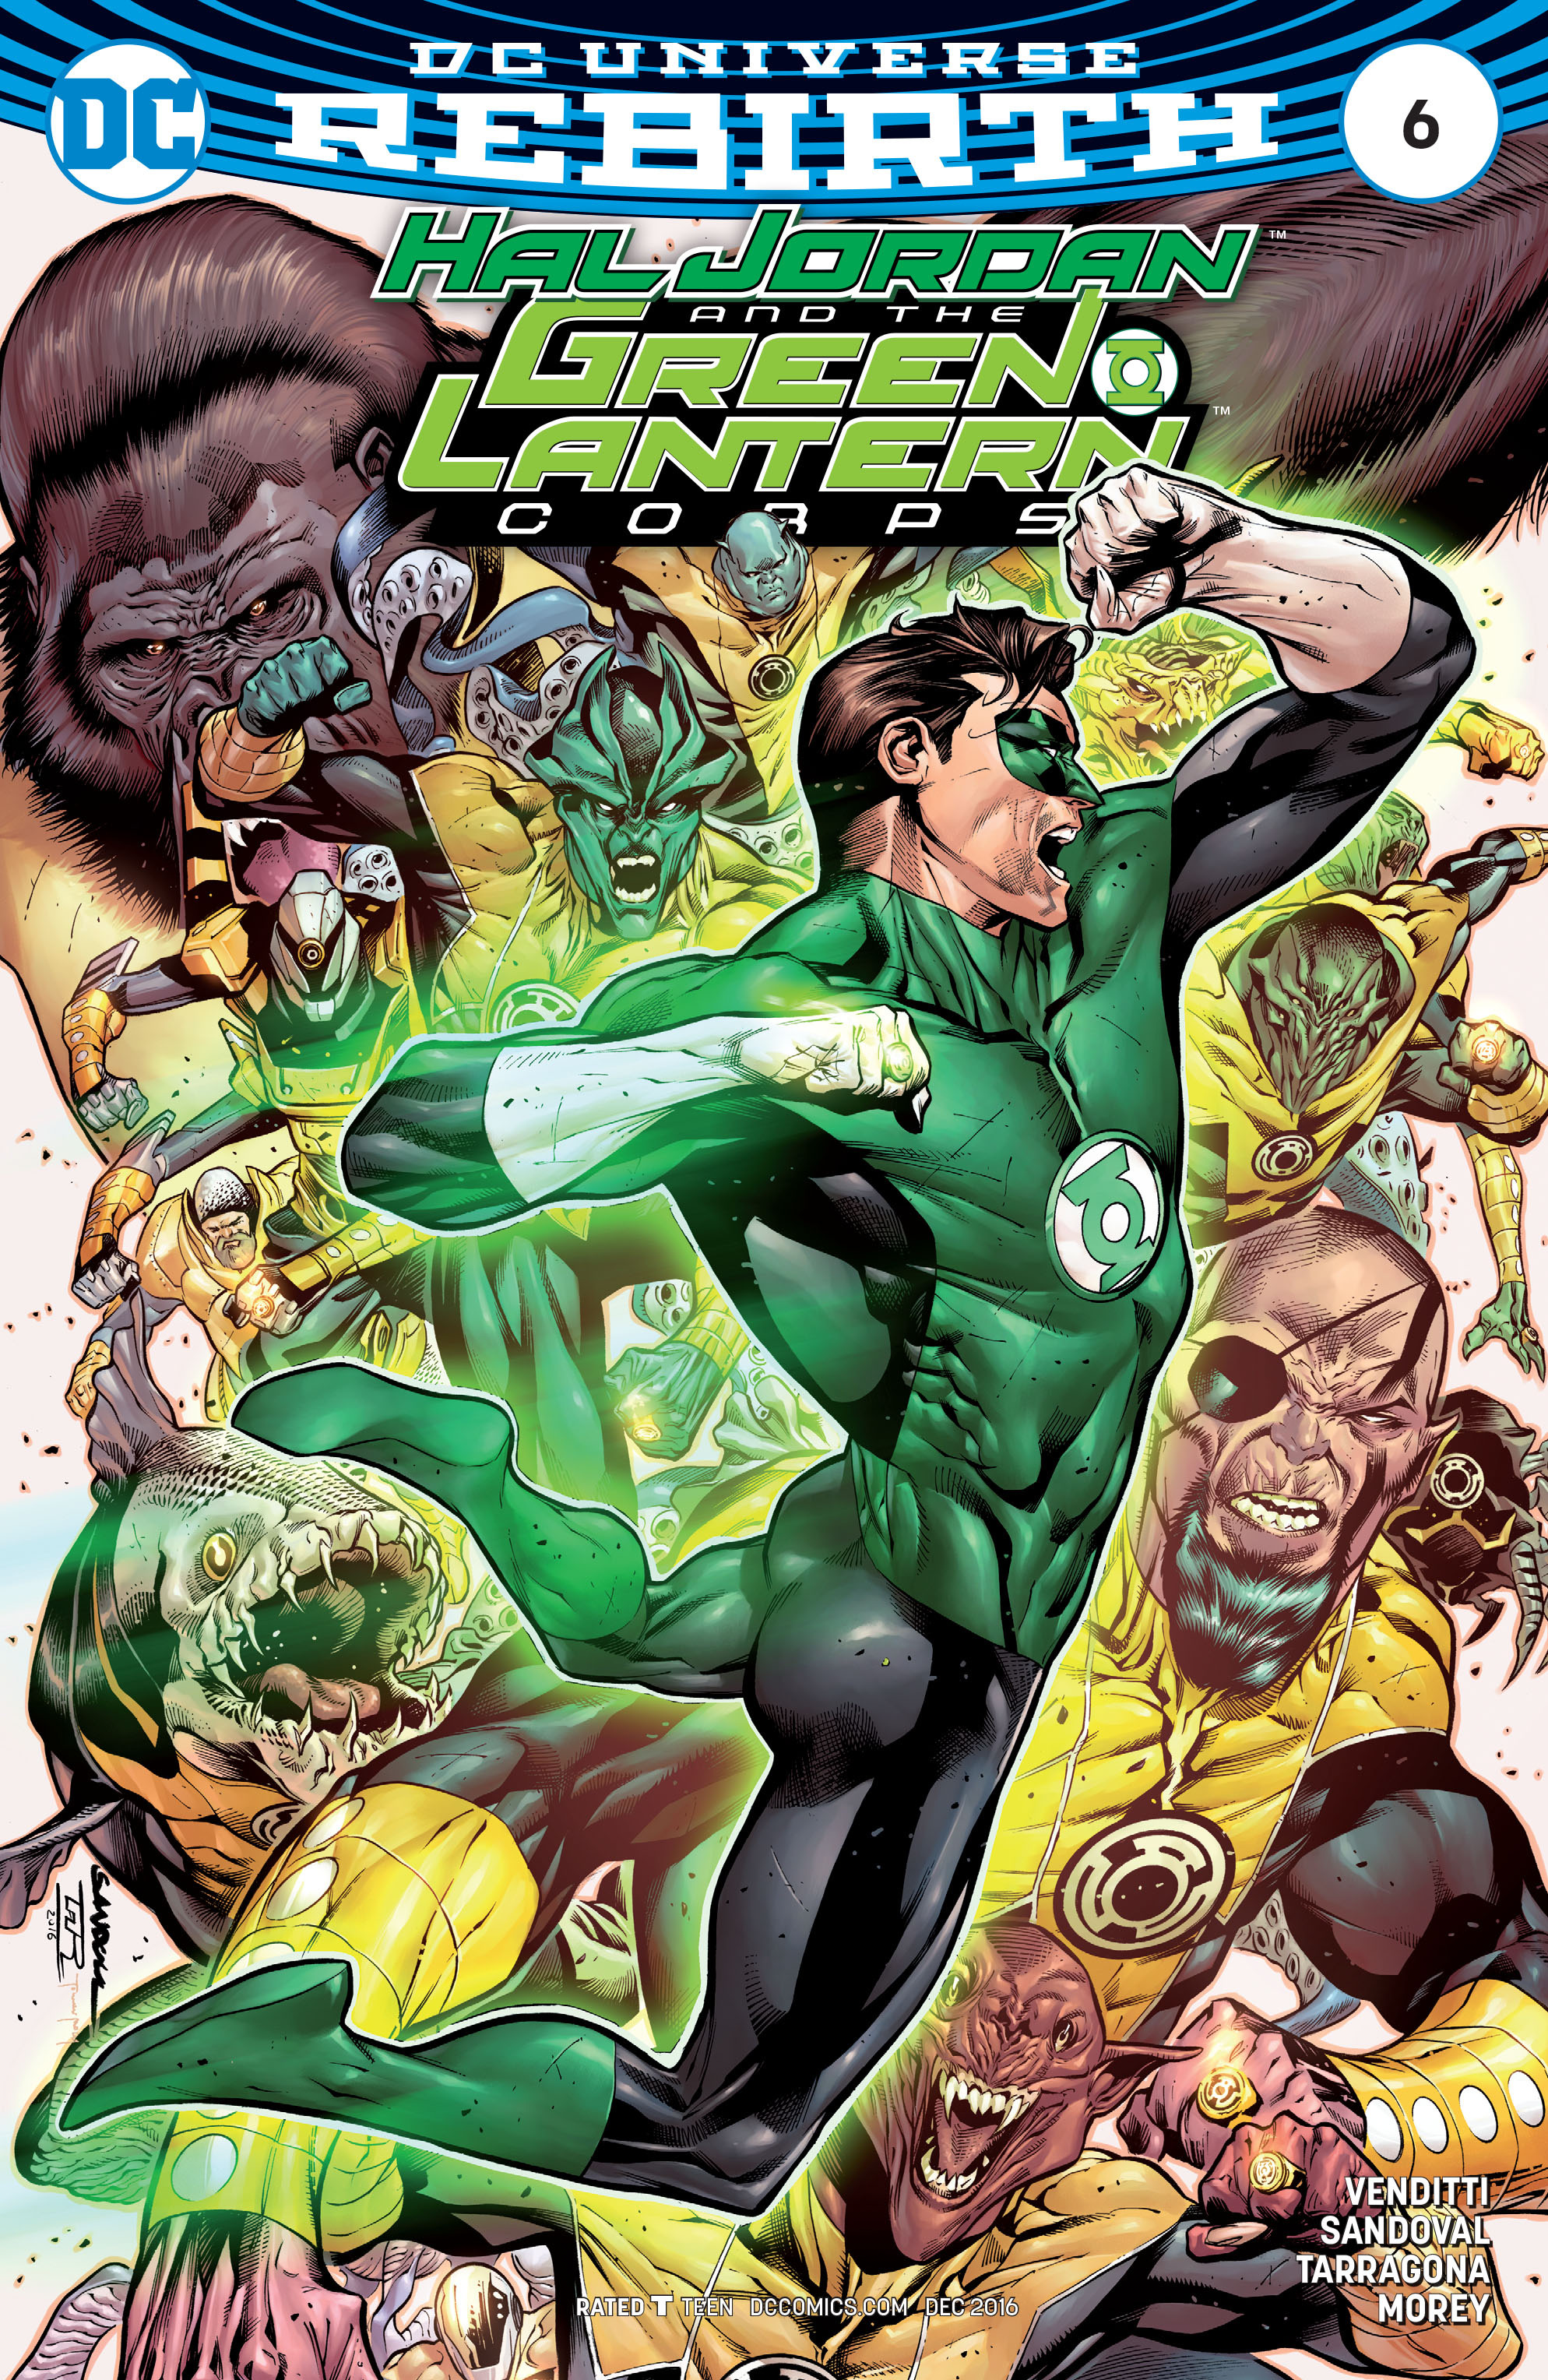 Hal Jordan & the Green Lantern Corps: Rebirth issue 6 - Page 1